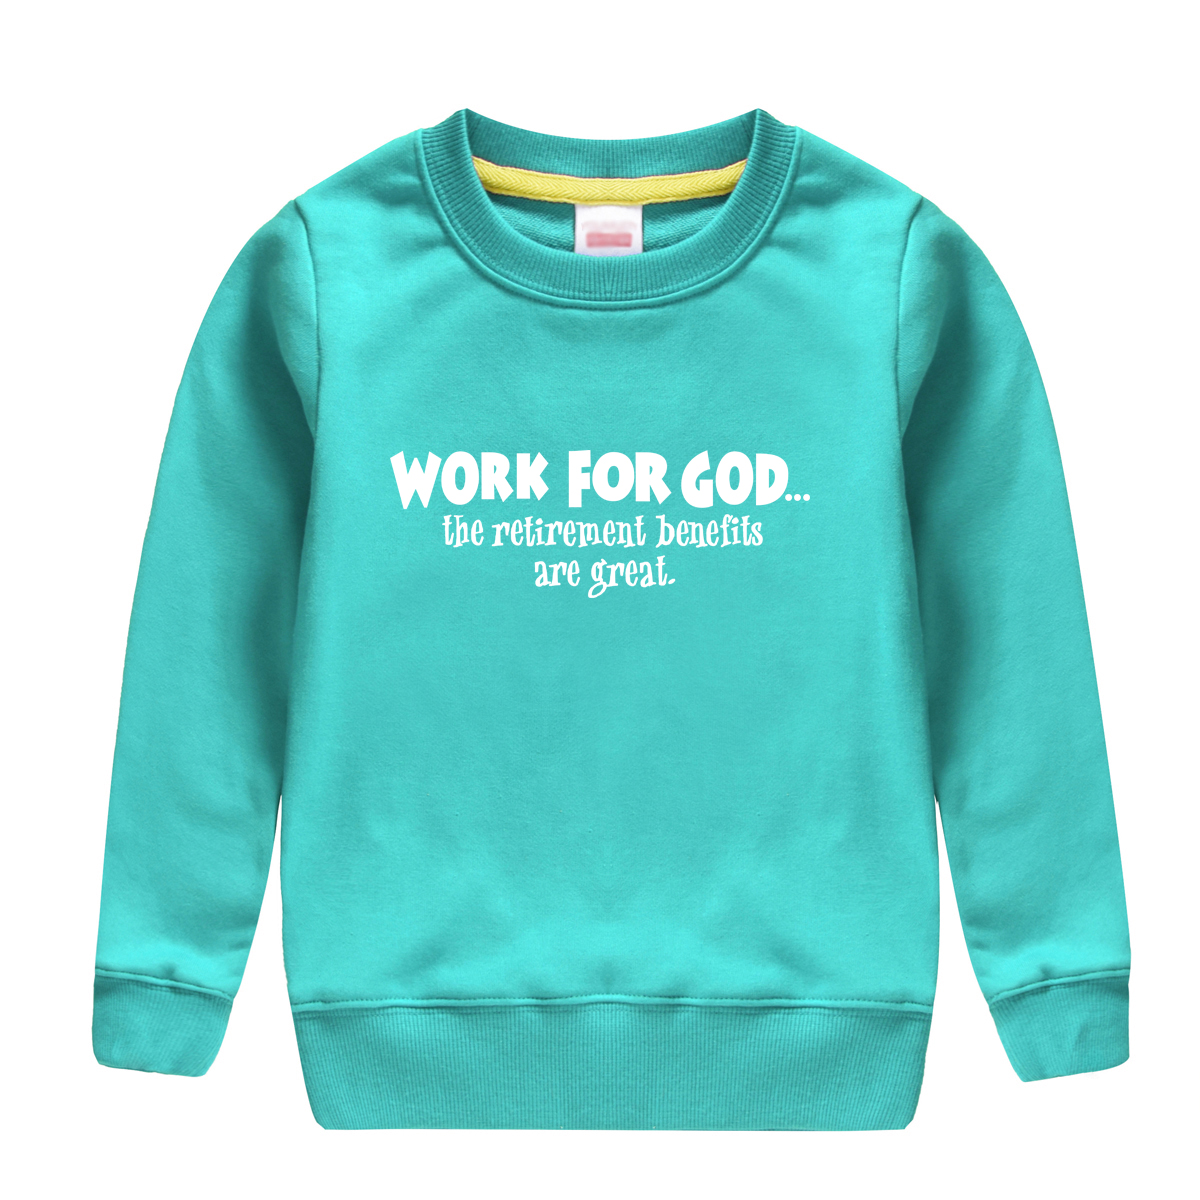 WORK FOR GOD pattern printed 2018 new fashion cotton beautiful sweatshirt baby boy hoodi ...